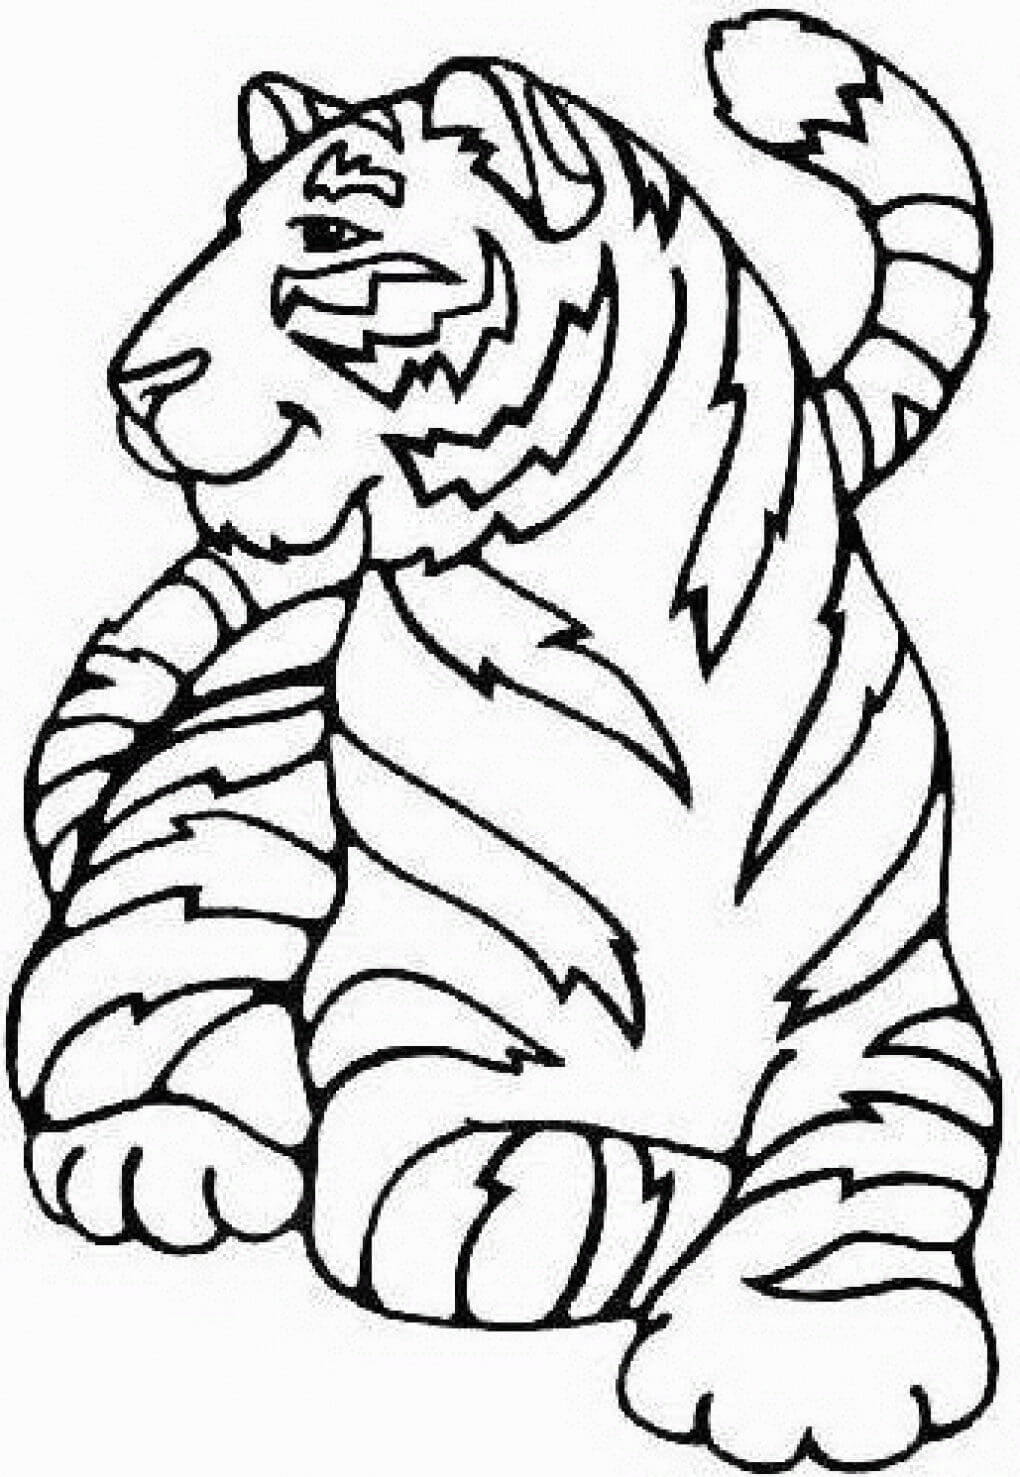 Nature and Wildlife-Animal Coloring Pages for Kids Tiger of The Jungle